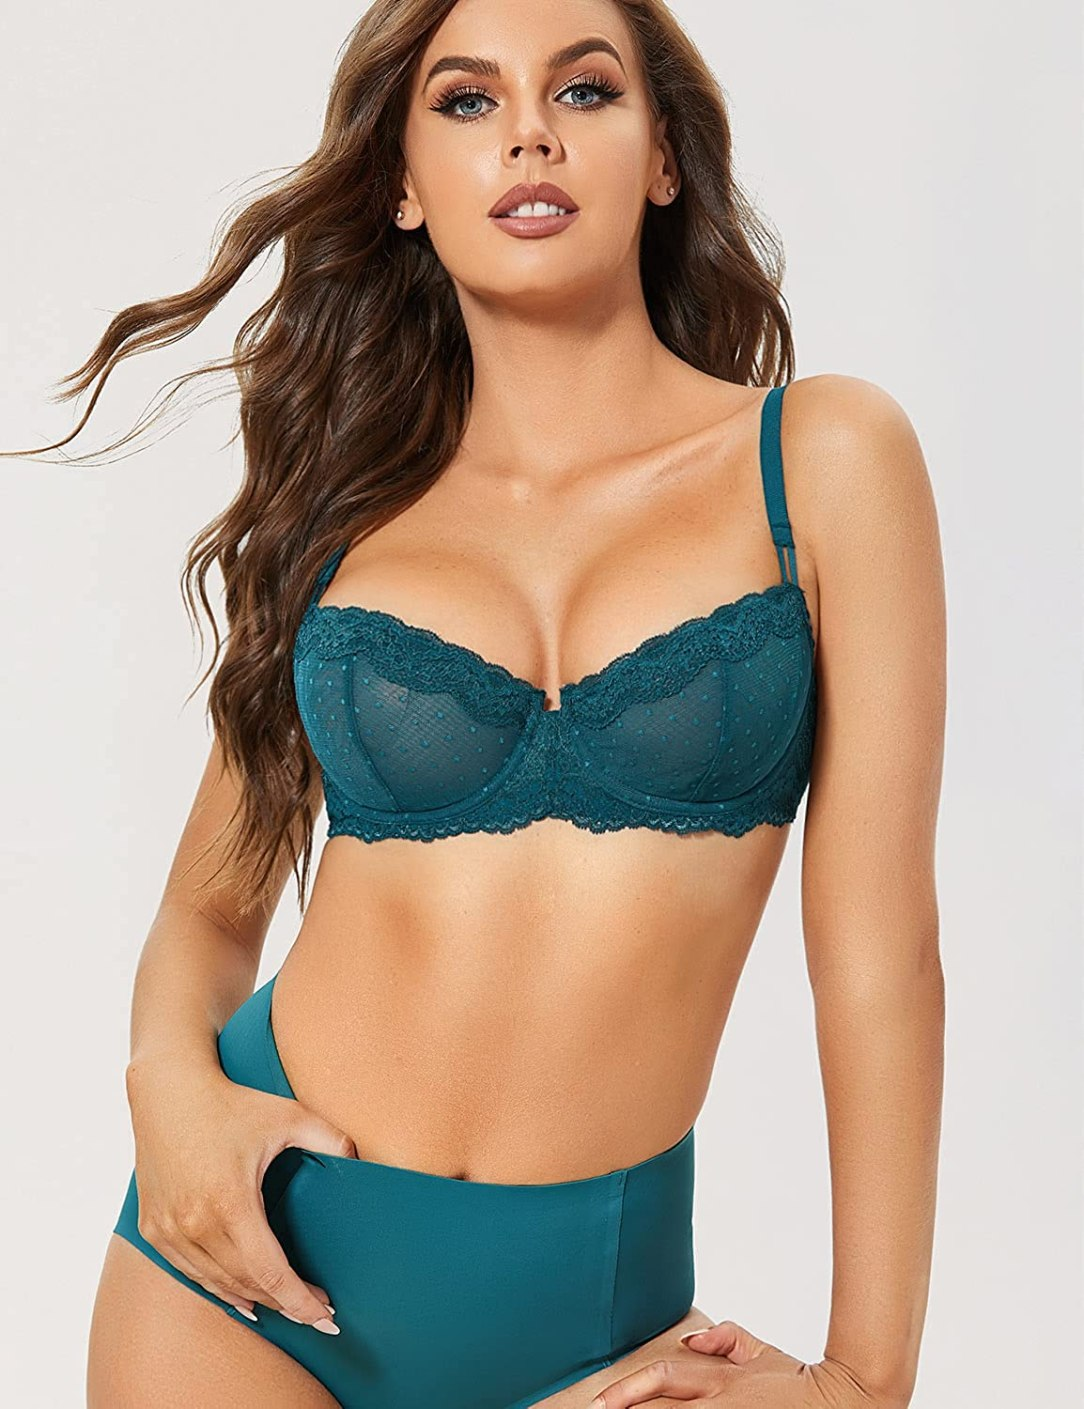 Lace Bra For First Date In Amazing Colors